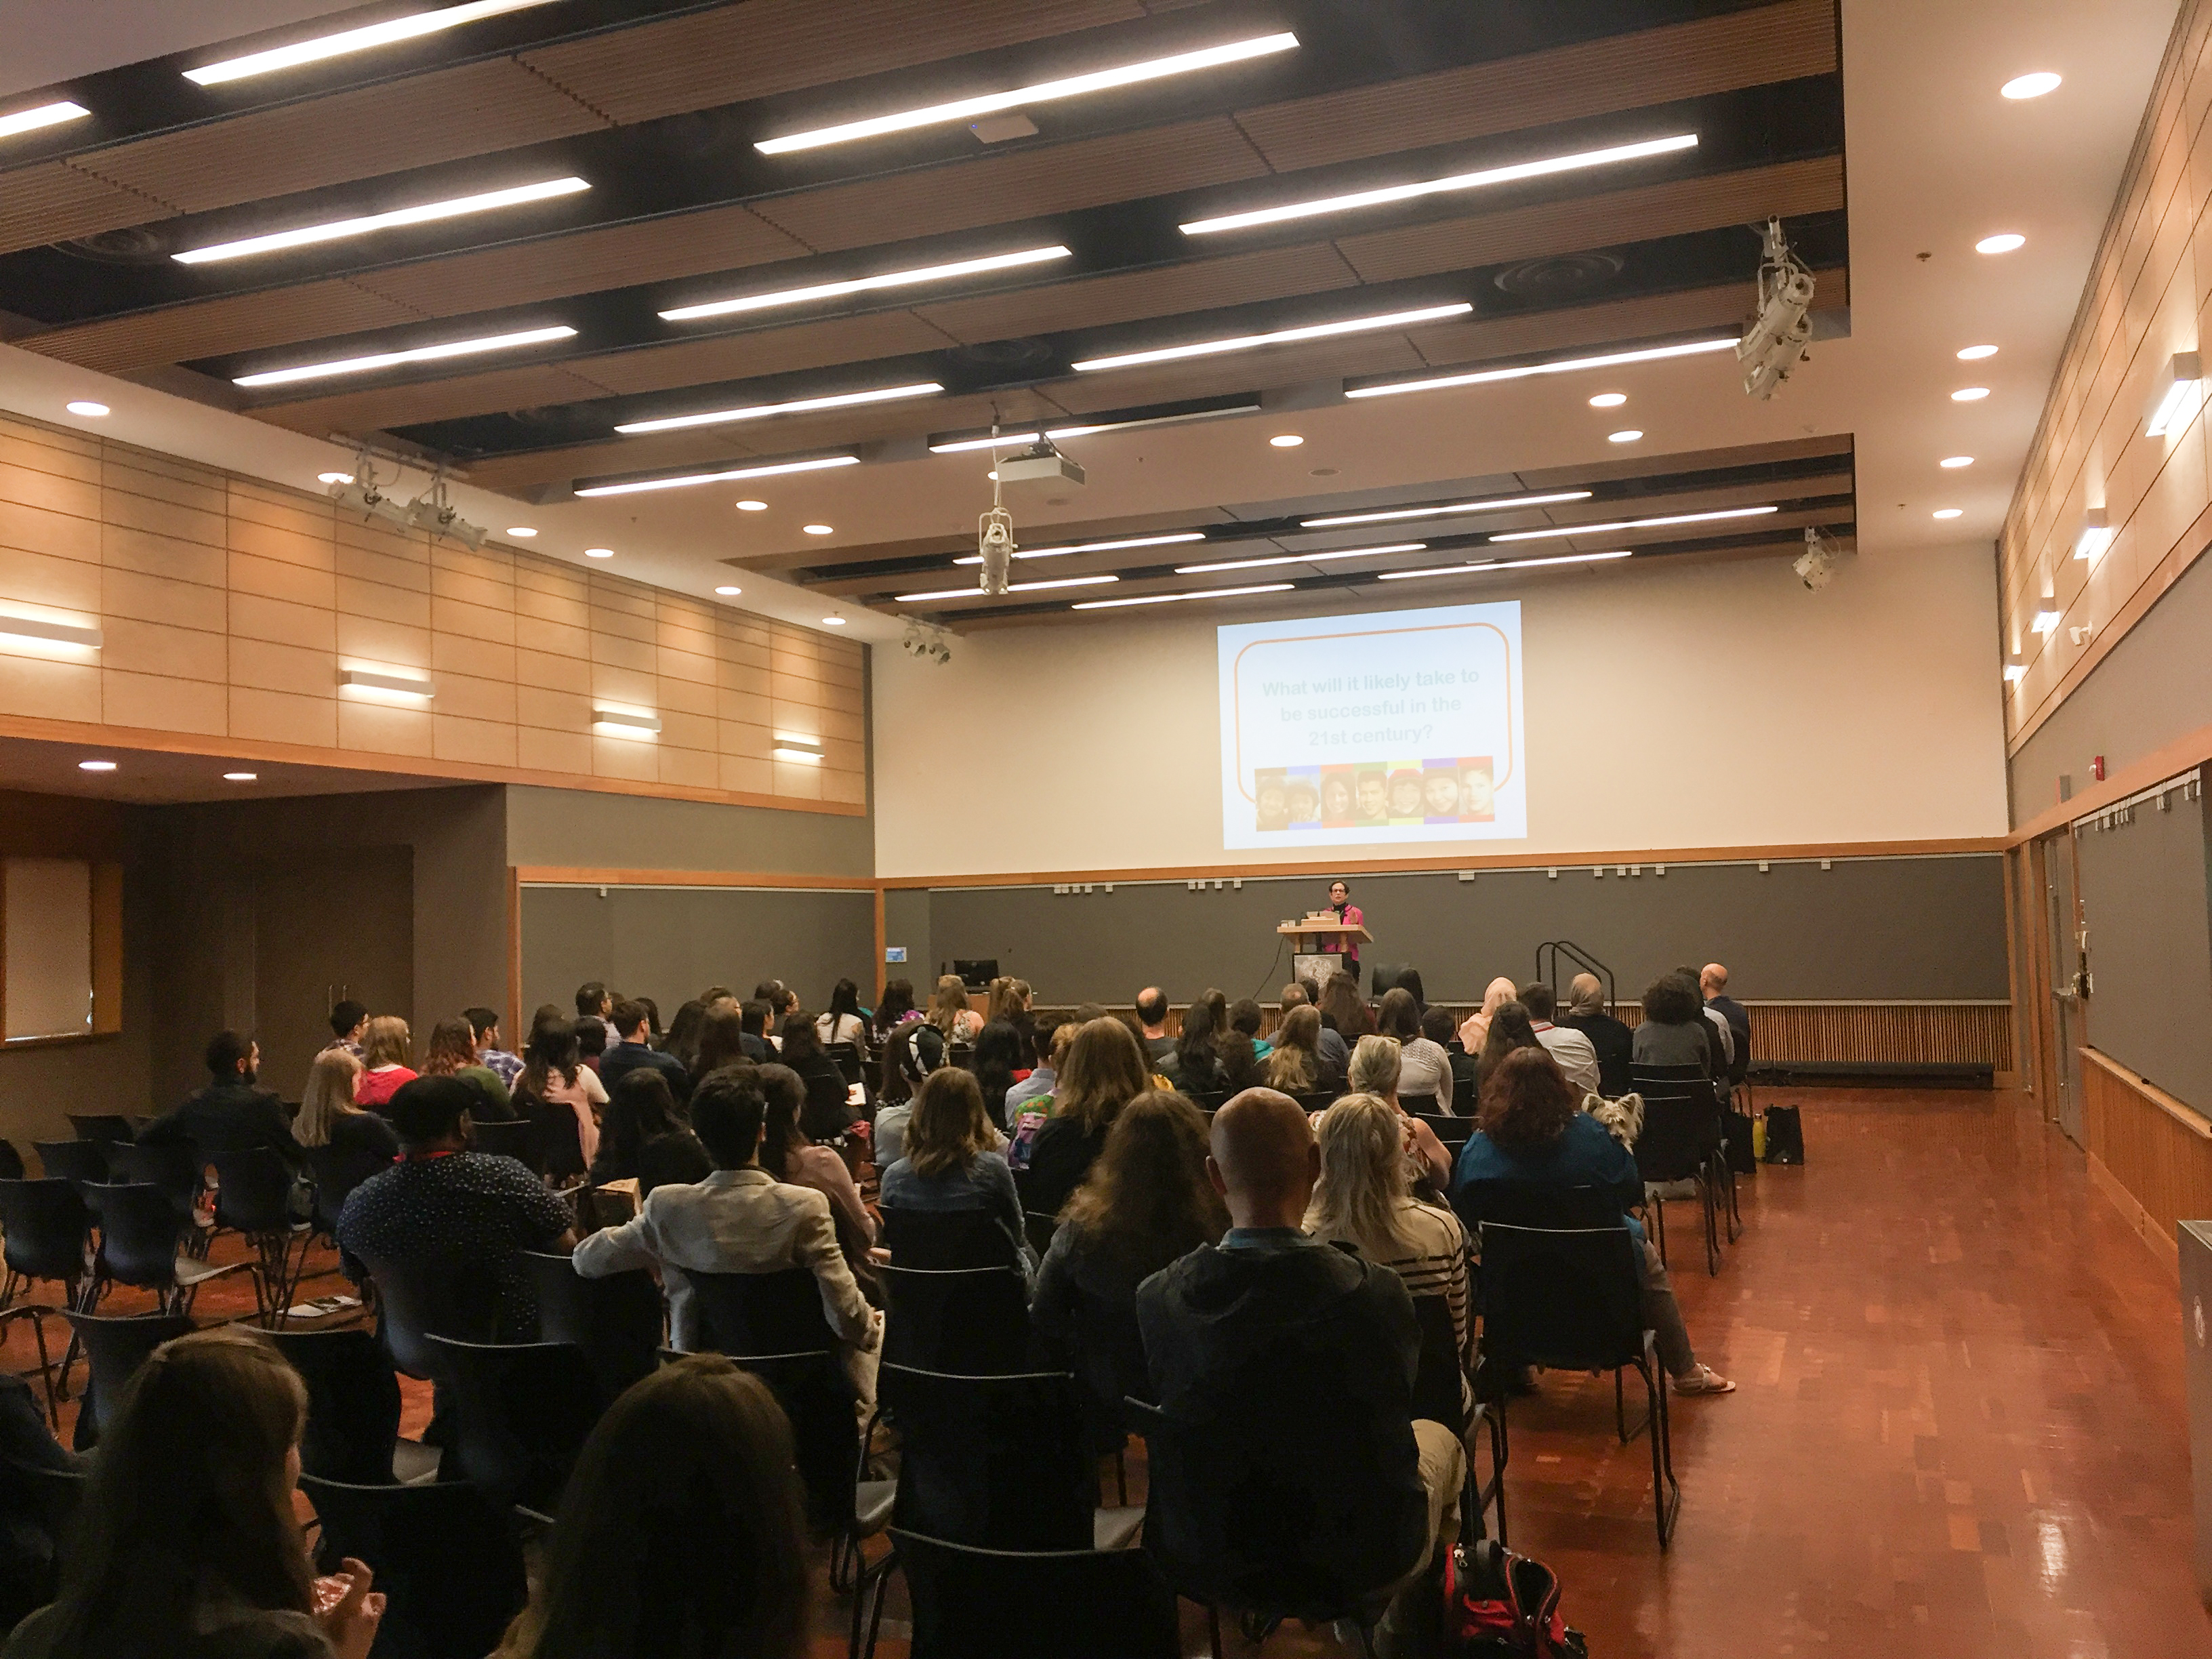 Dr. Adele Diamond addresses the audience during her keynote speech at the end of the Connecting Minds conference. (Lincoln Saugstad)